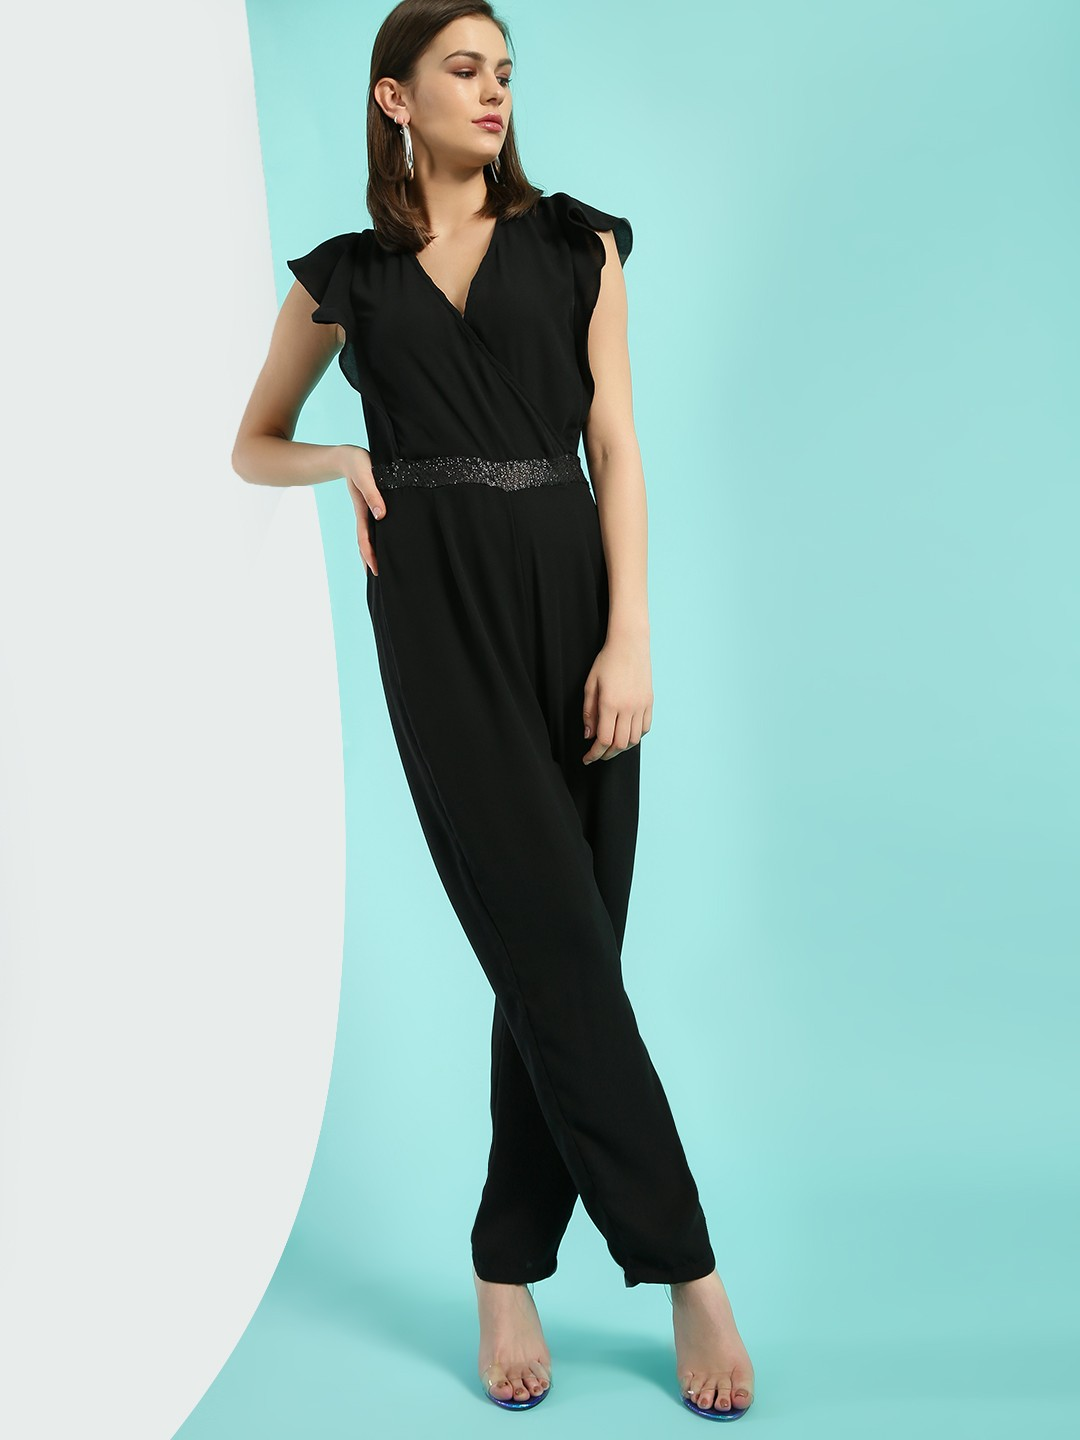 Oliv Black Sequins Detail Jumpsuit 1